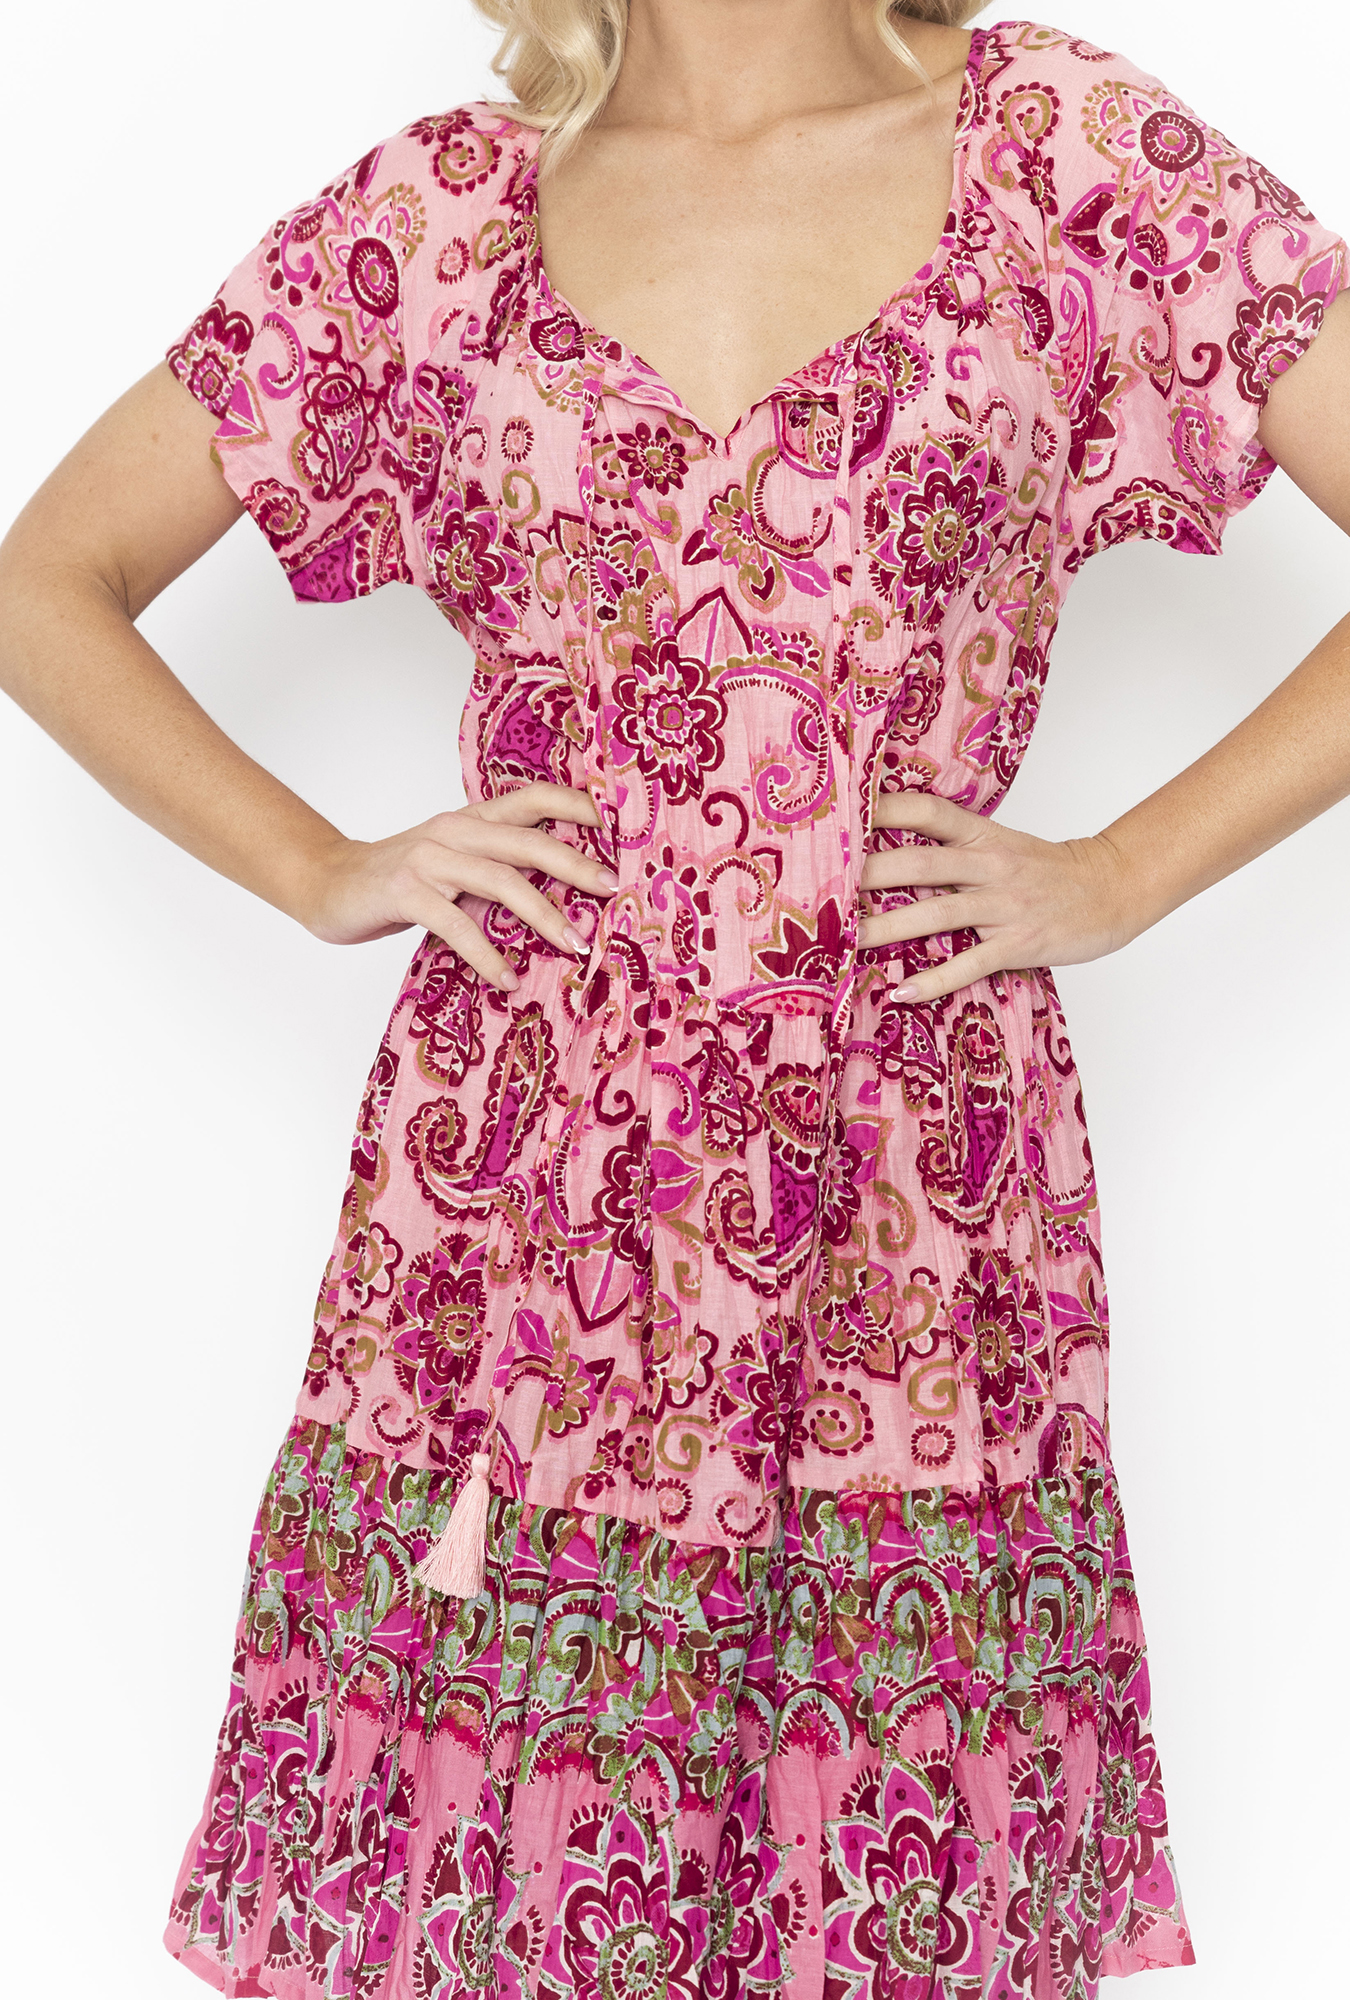 Nora Dress in Pink Paisley